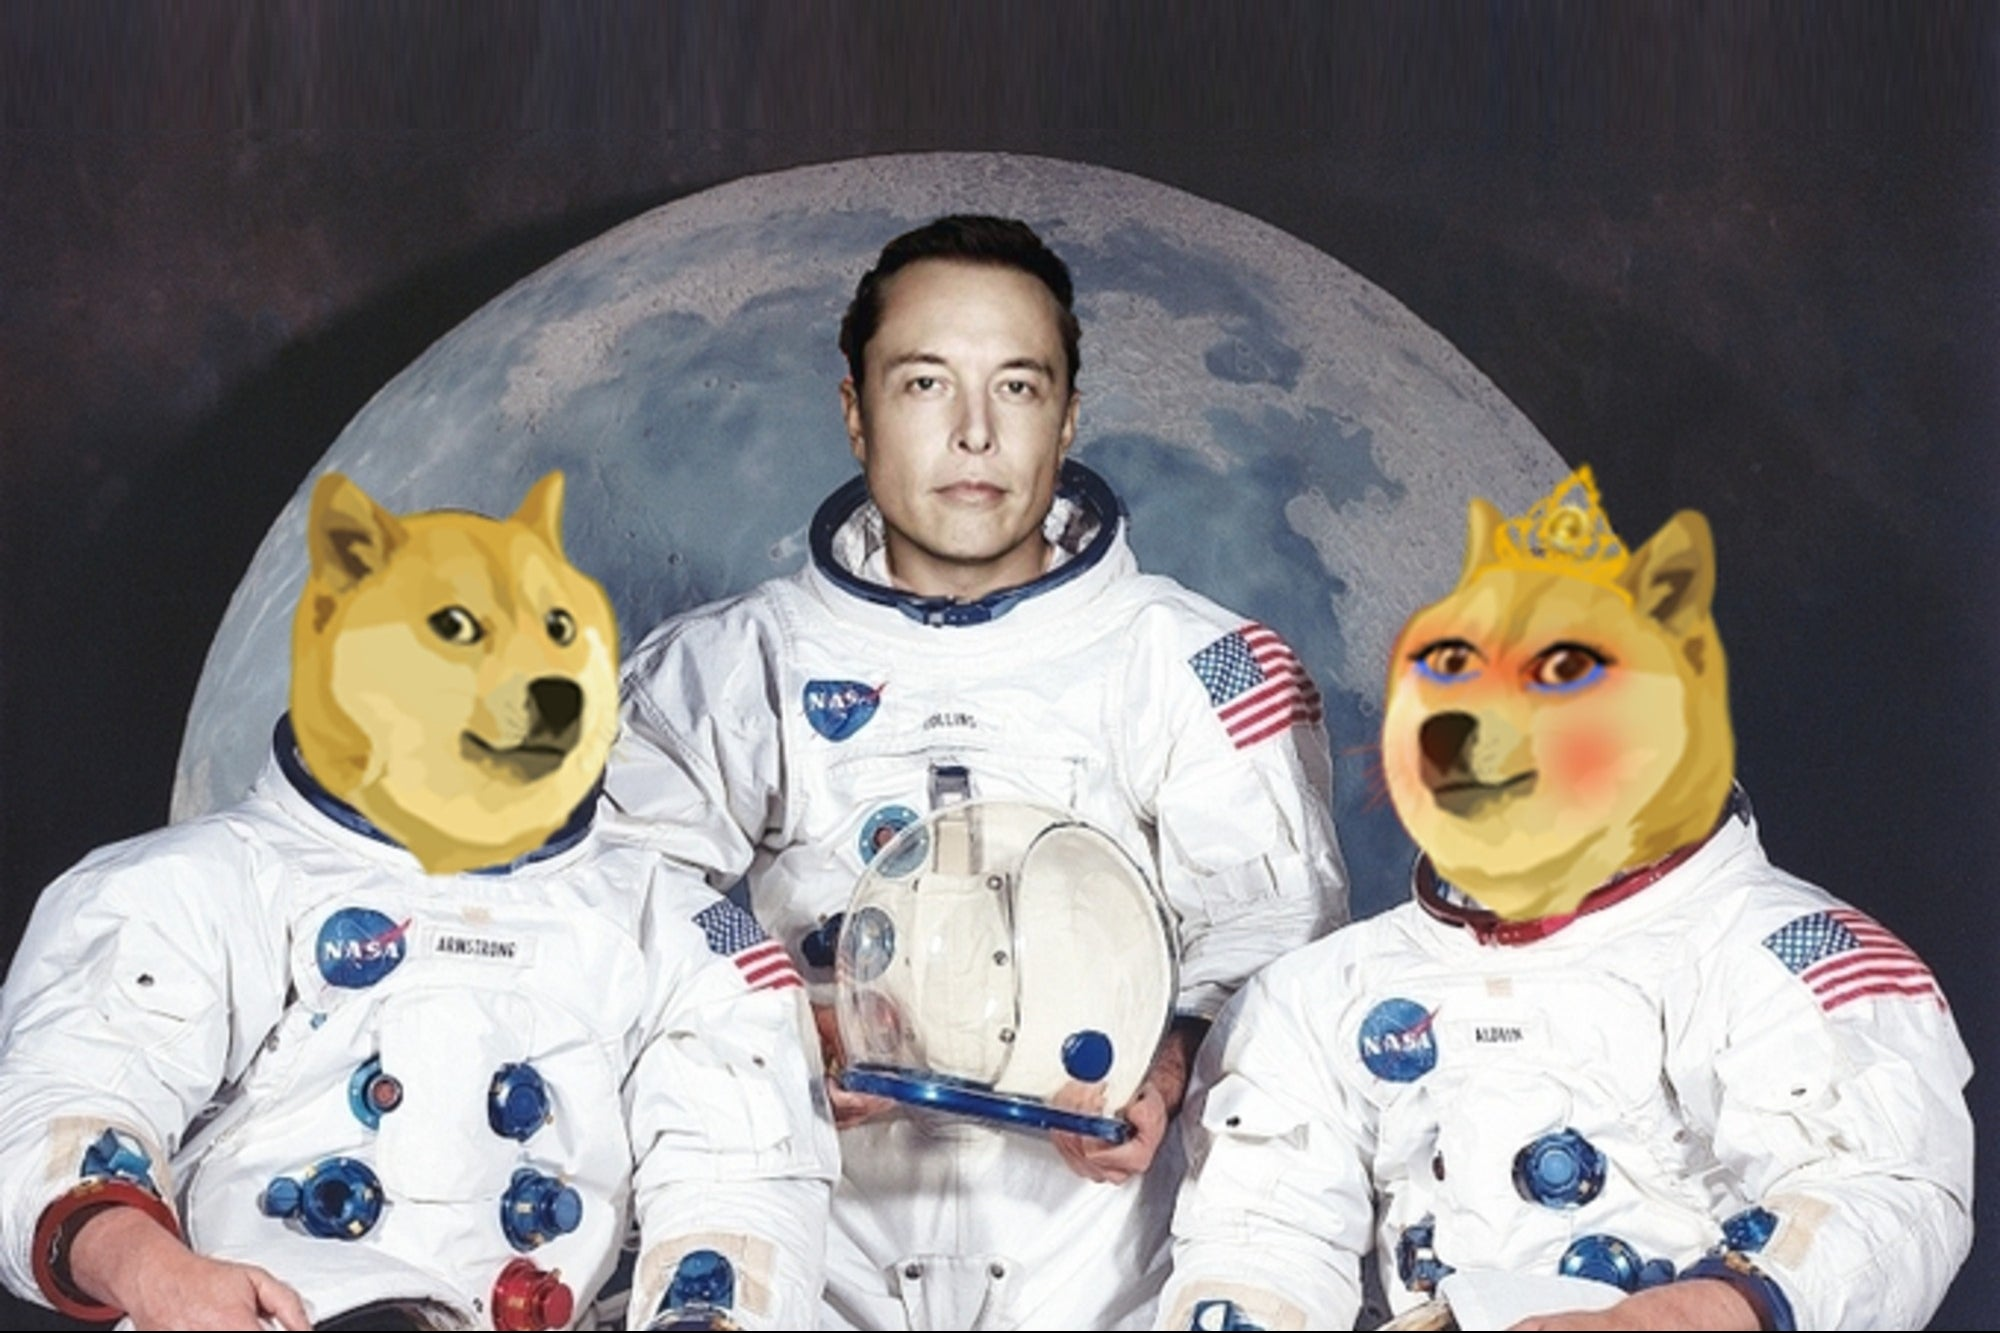 What is the Wifedoge? Meet the cryptocurrency 'wife' of Dogecoin that grew more than 3,000% in one day and Elon Musk already 'liked' it